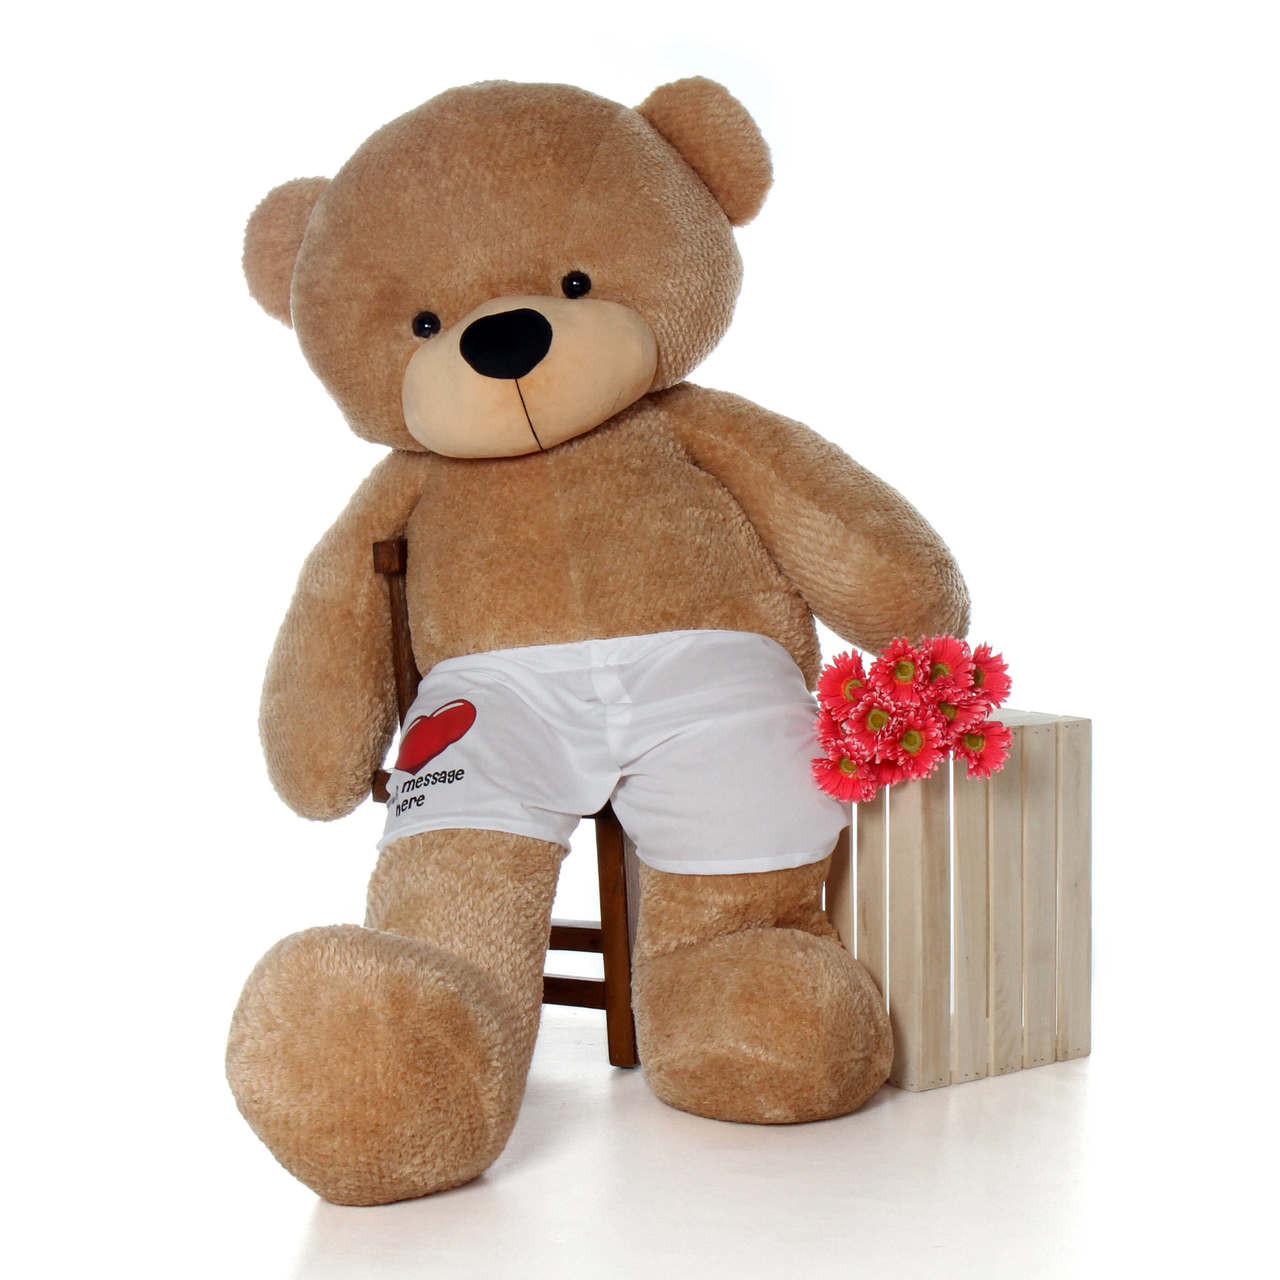 72in Shaggy Amber Cuddles Giant Teddy Bear in Red Heart Your Message Here Boxers